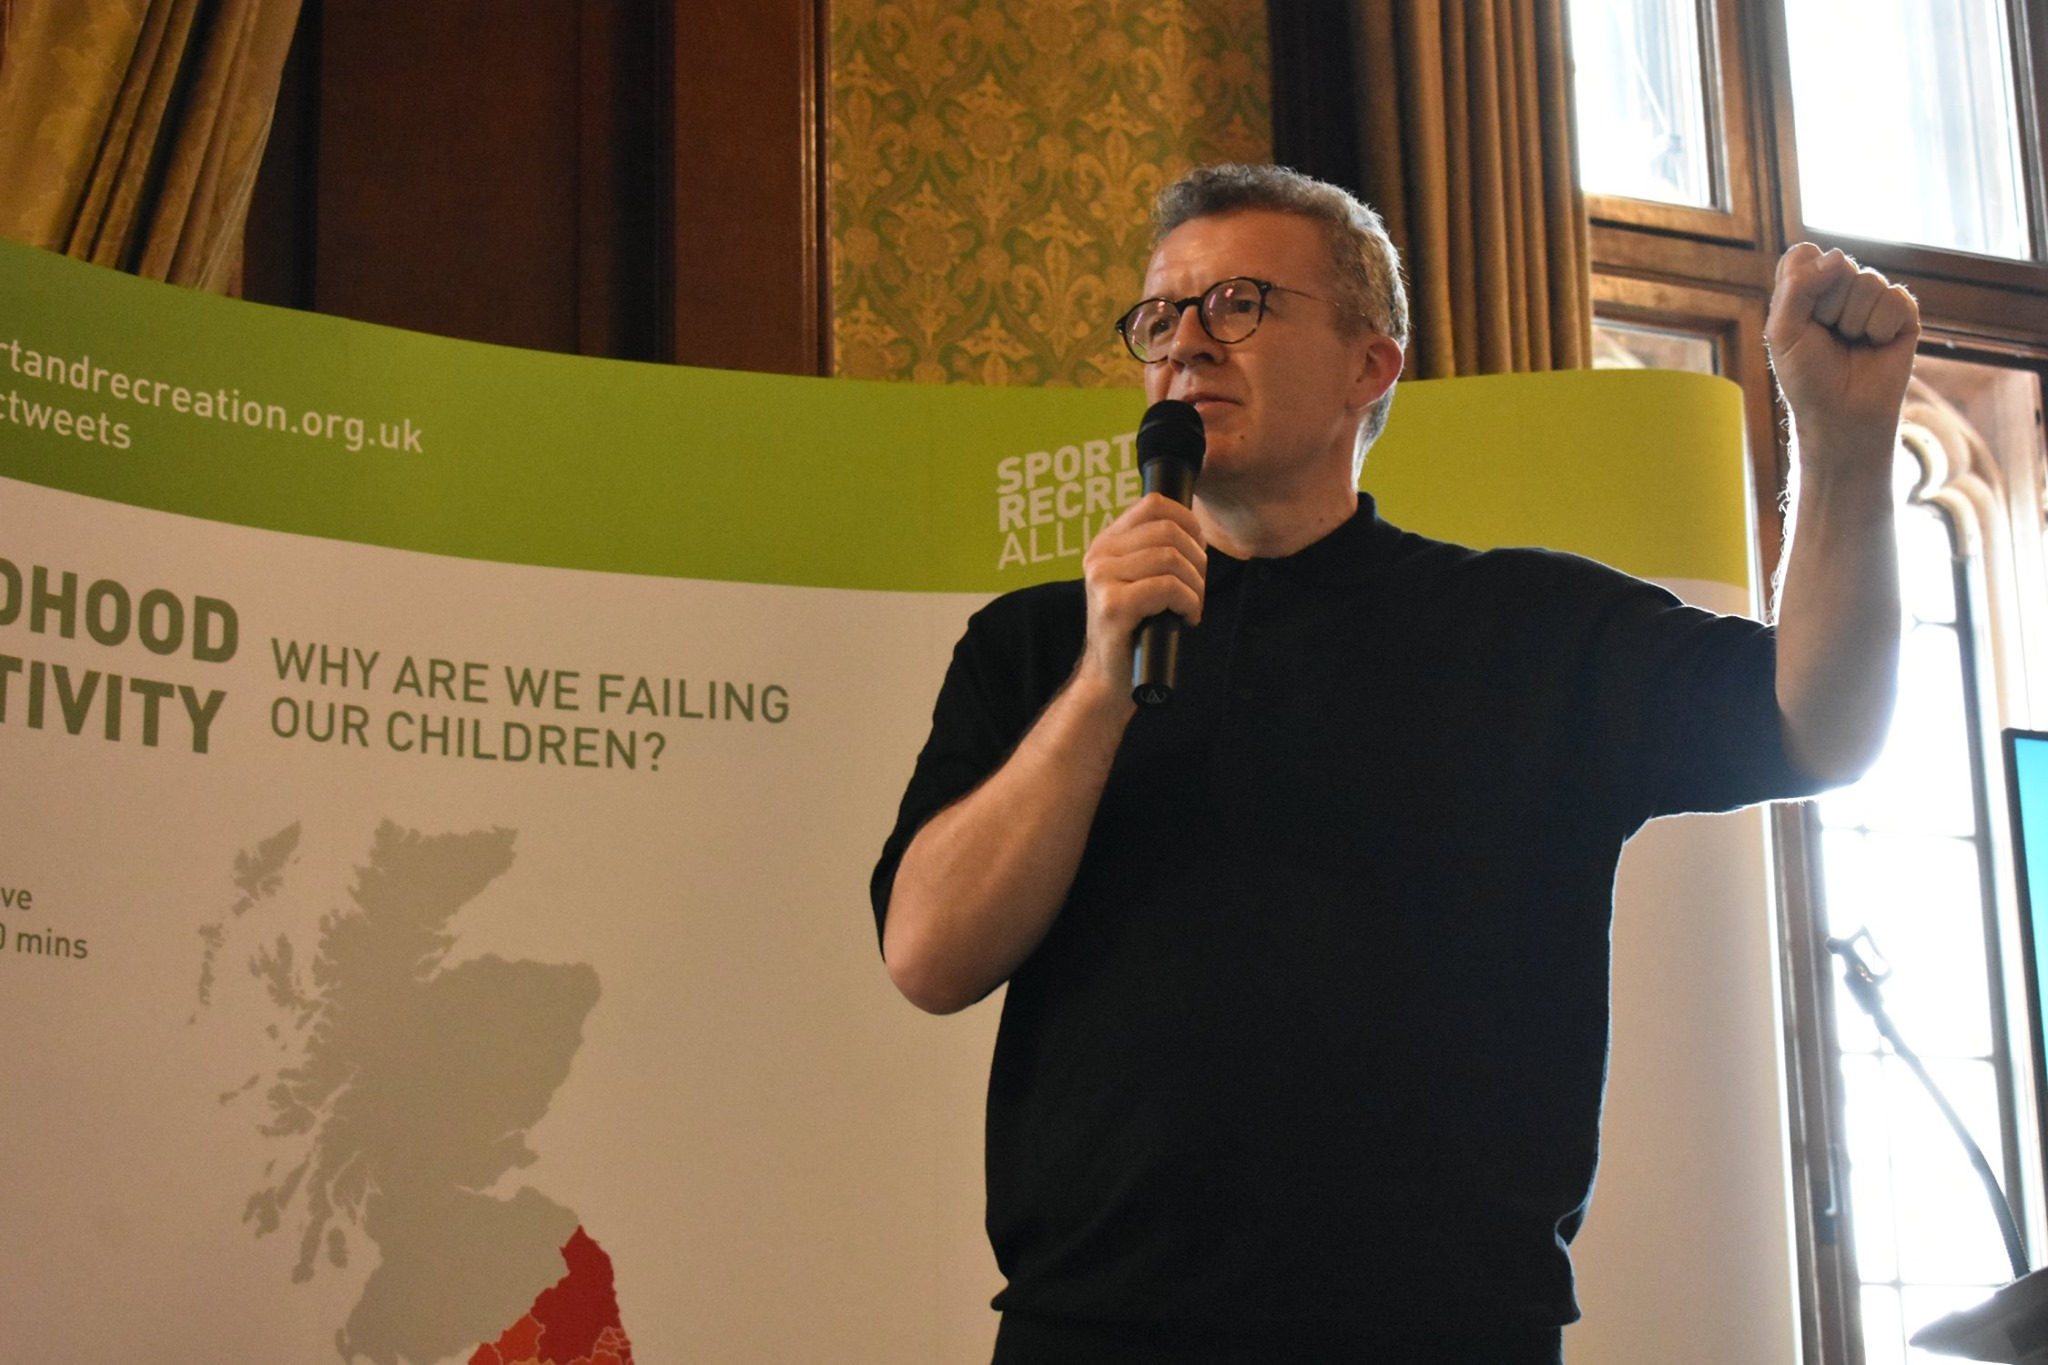 Tom Watson addresses the room in front of the PoliMapper-designed stand backdrop (Photo Credit: Sport and Recreation Alliance)